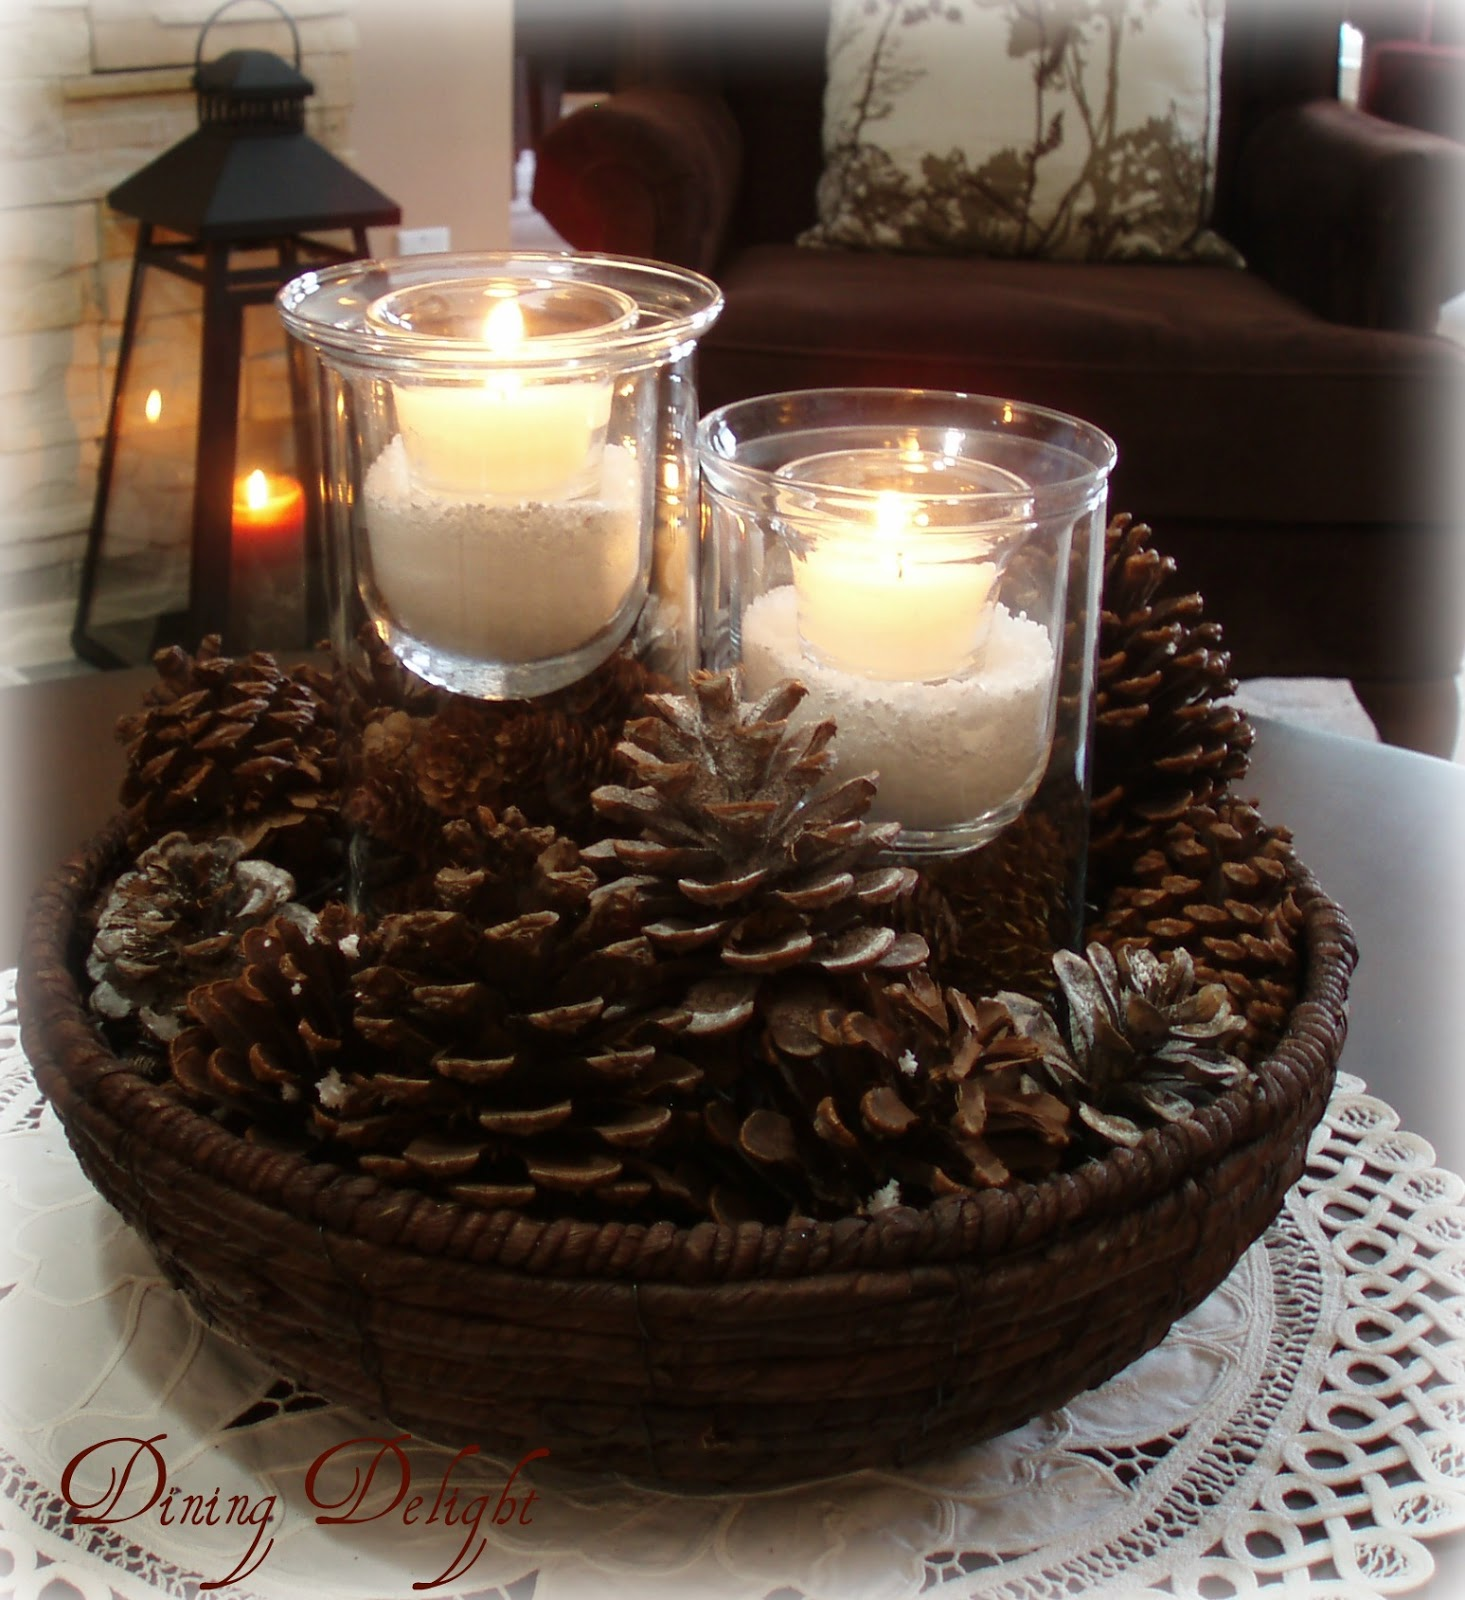 Living Room Table Centerpieces: Dining Delight: Winter Living Room In White, Brown And Cream